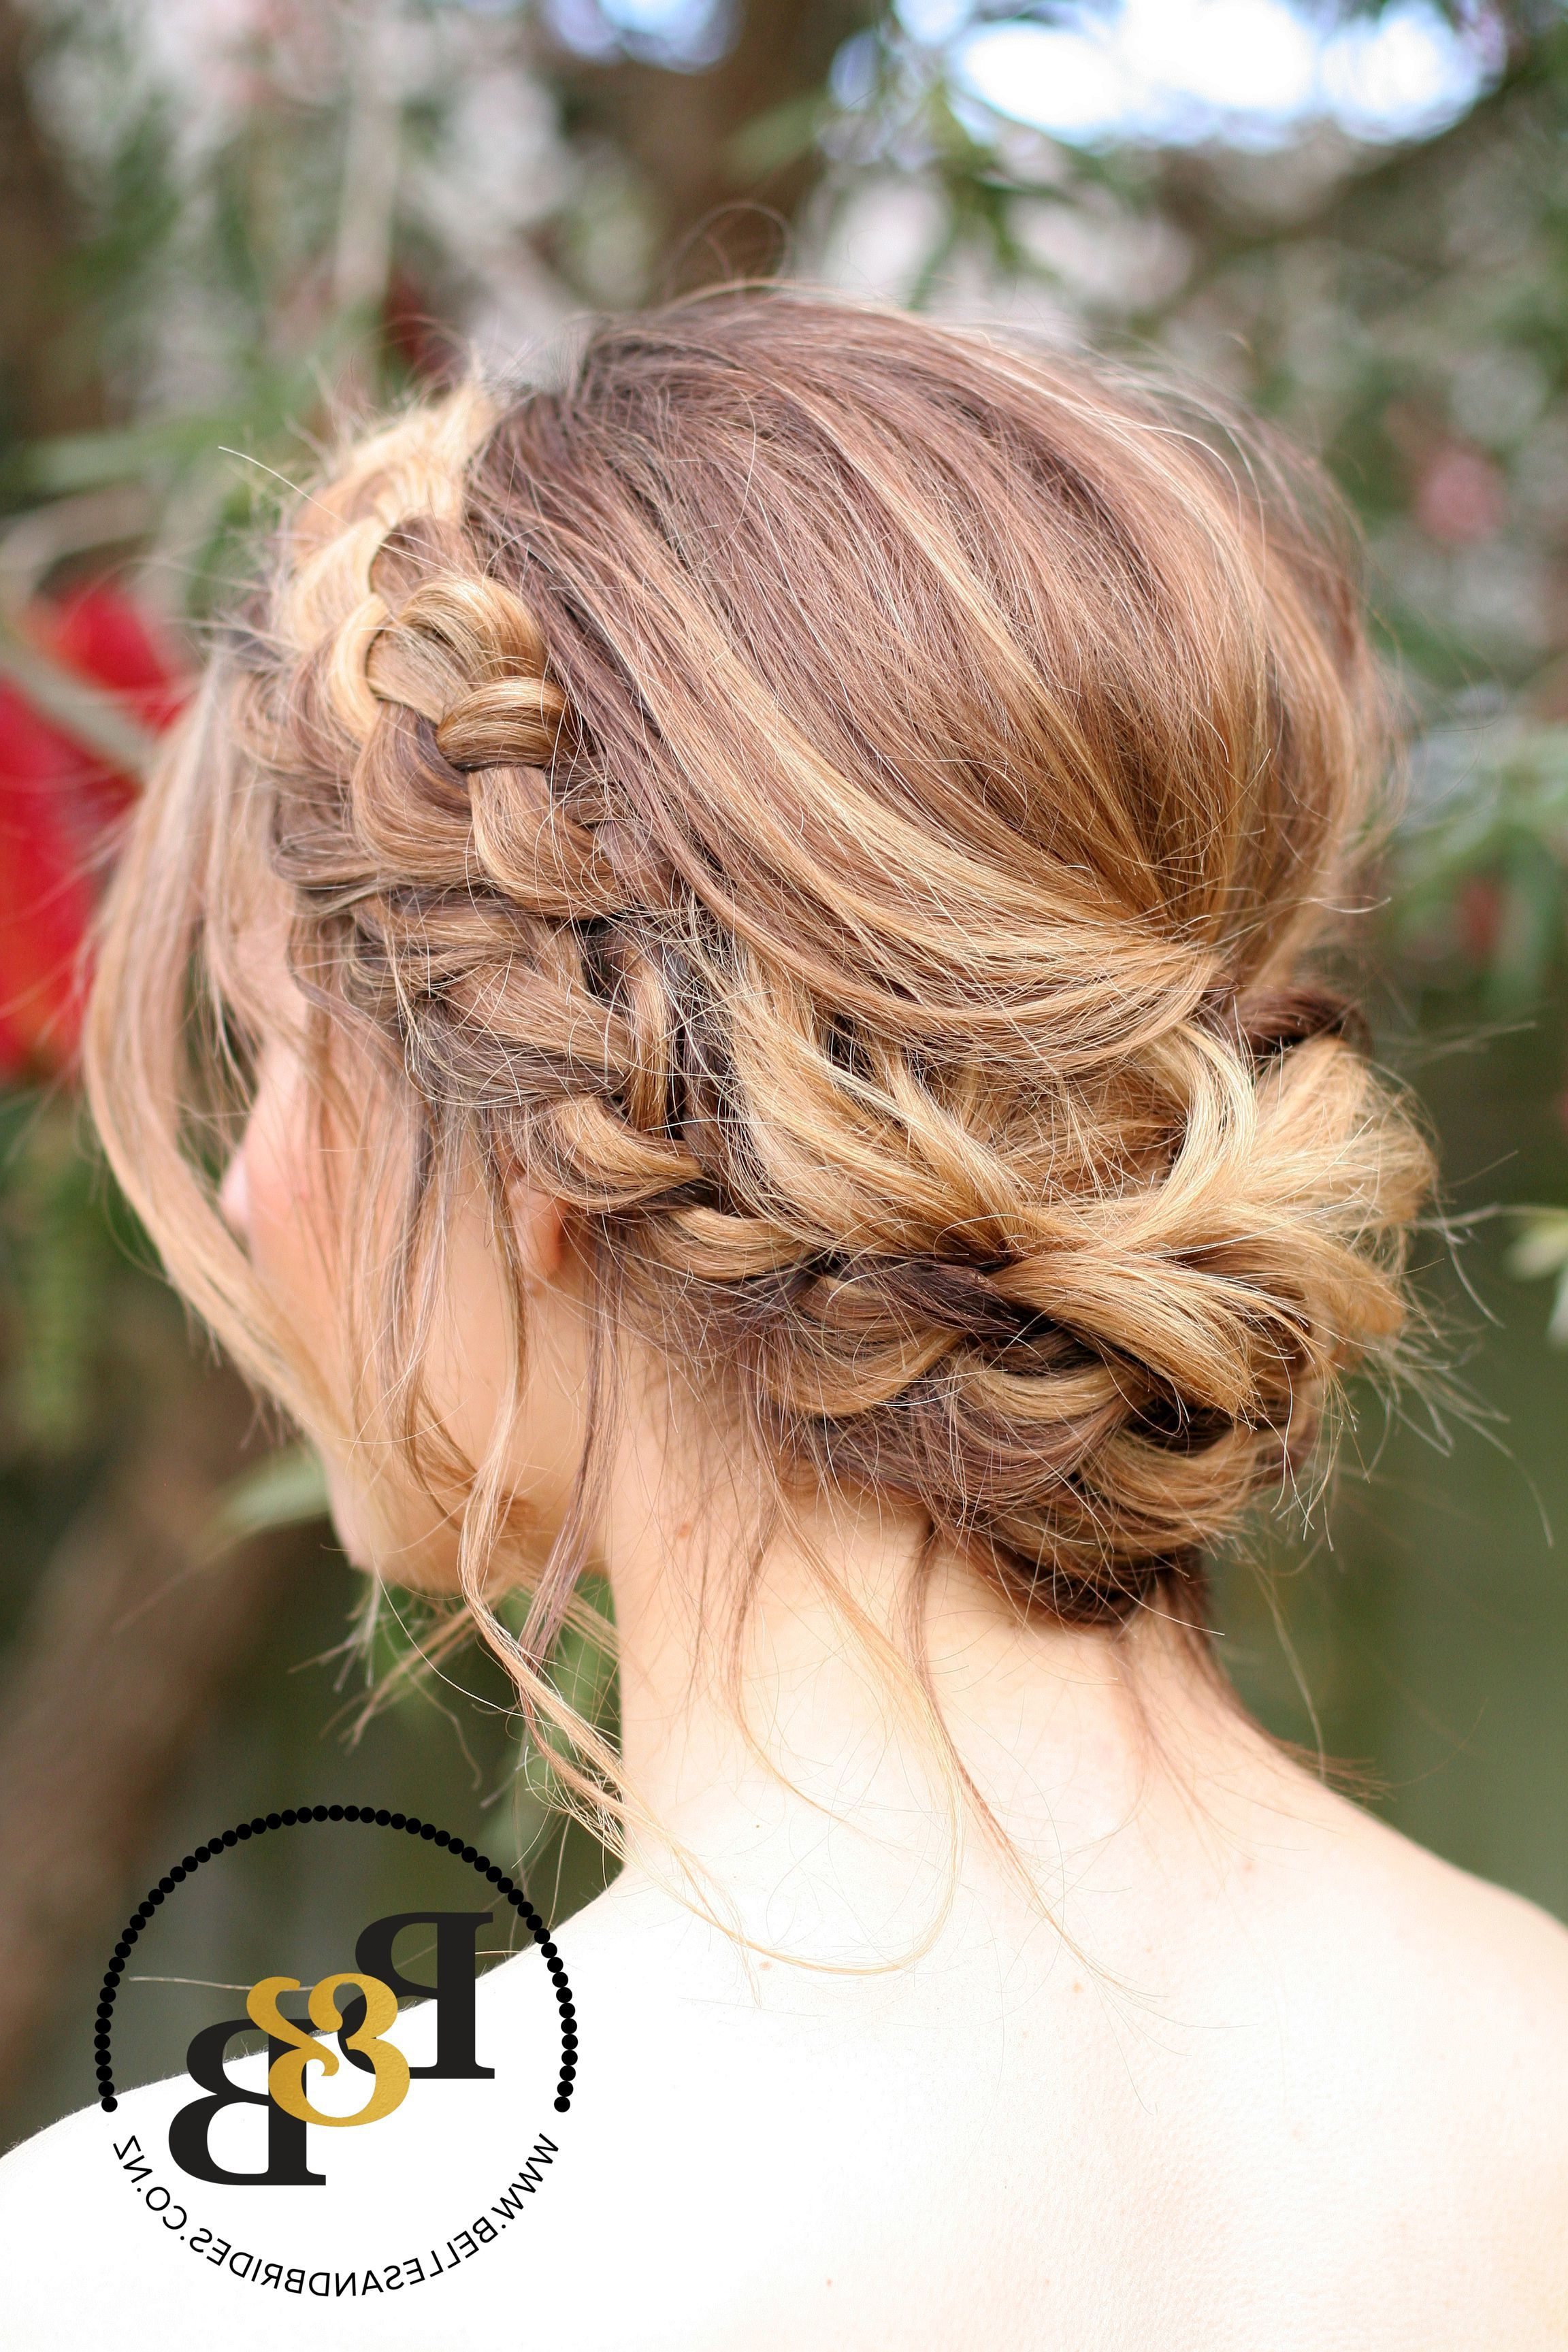 Wedding Hair With Braid / Messy Bridal Updo / Bridesmaids Hair For Latest Messy Bridal Updo Bridal Hairstyles (View 16 of 20)